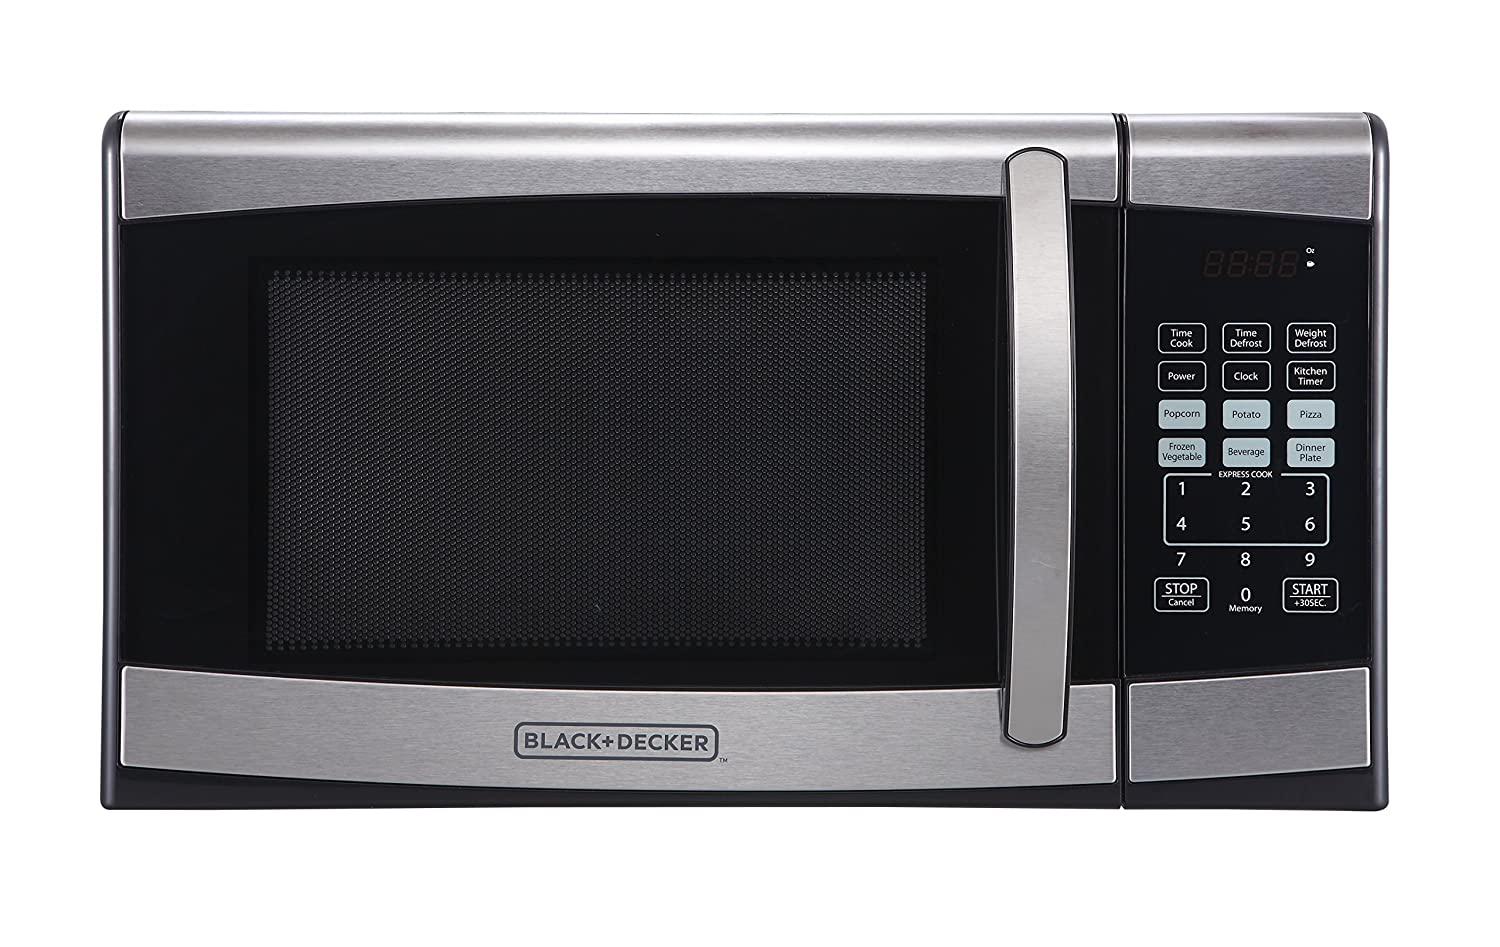 BLACK+DECKER EM925AZE-P 0.9 Cubic Foot 900 Watt Stainless Steel Microwave with Turntable, Medium, Silver